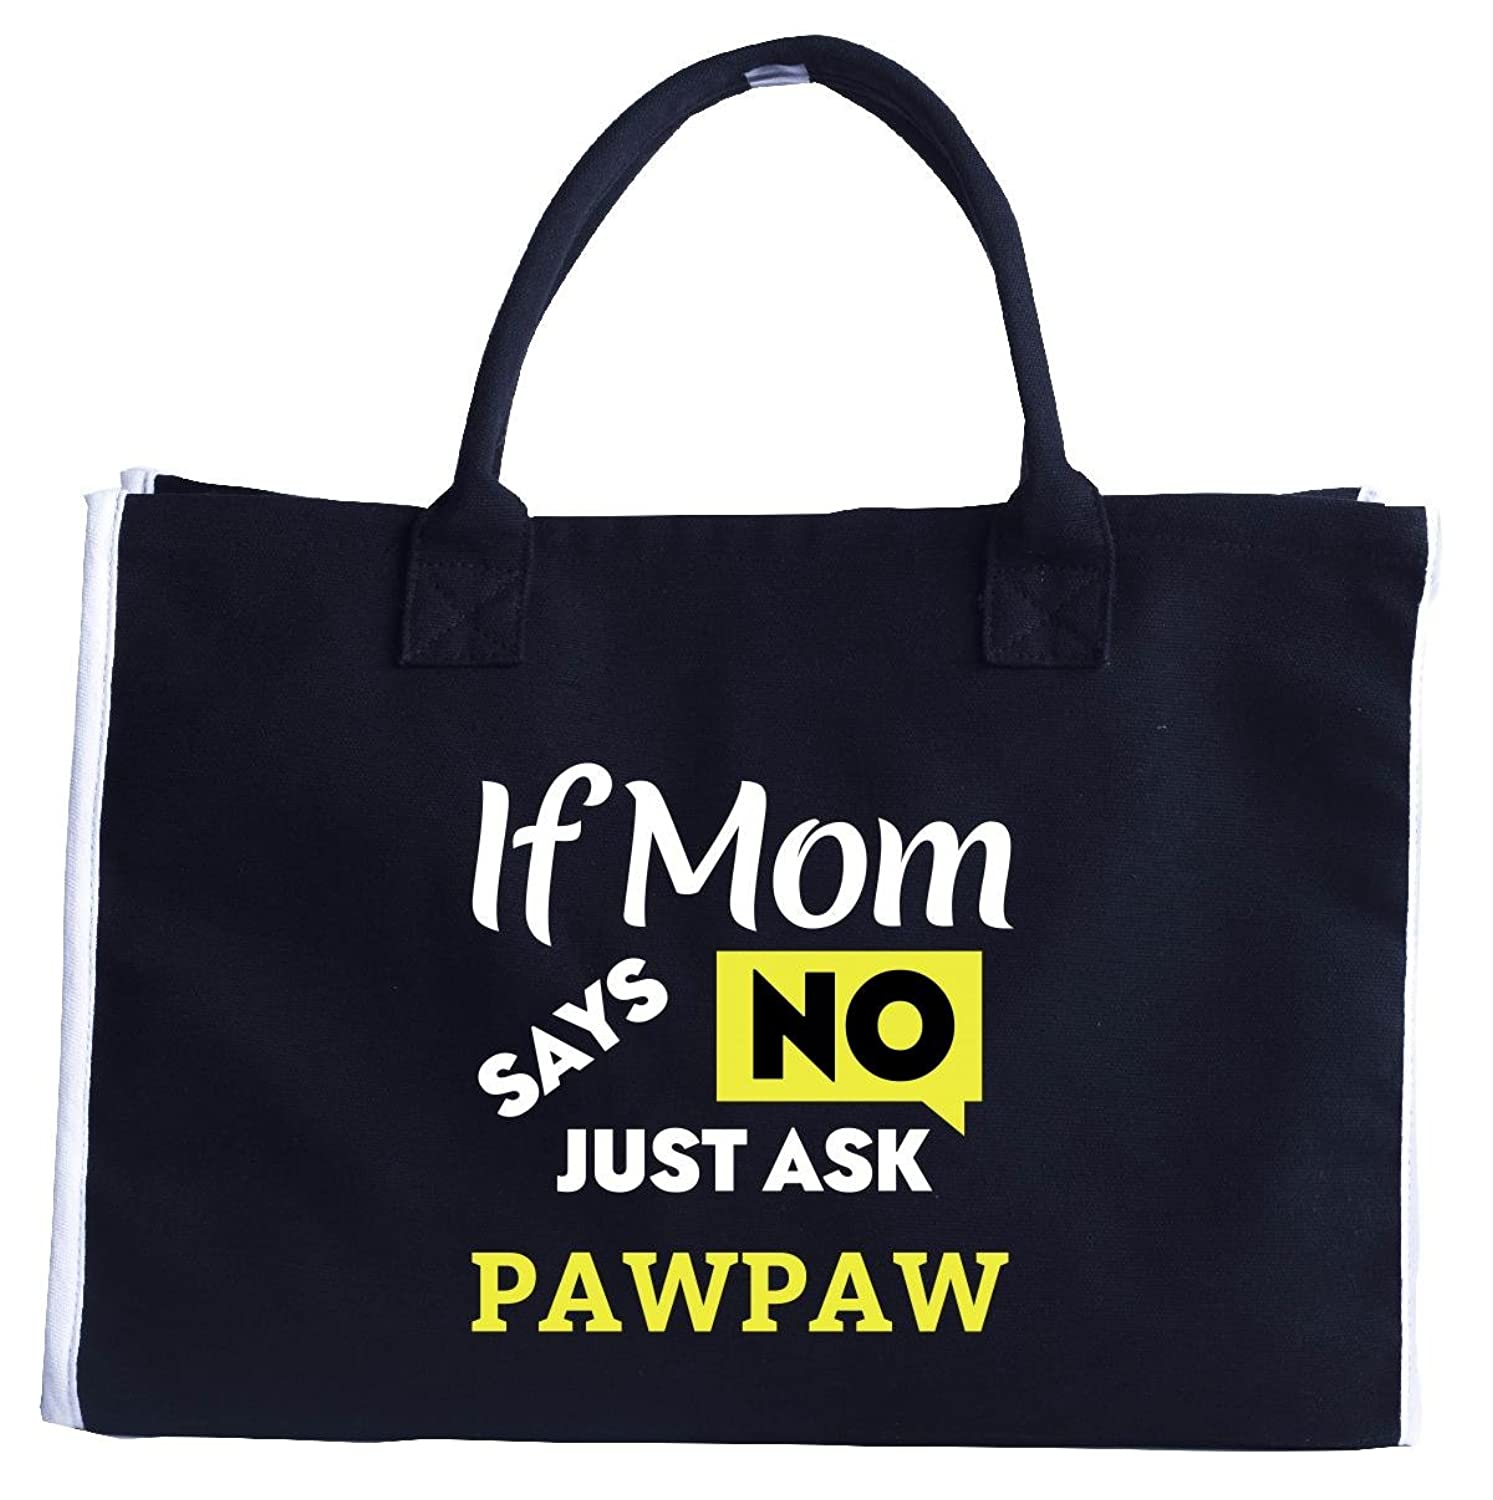 If Mom Says No Just Ask Pawpaw - Tote Bag